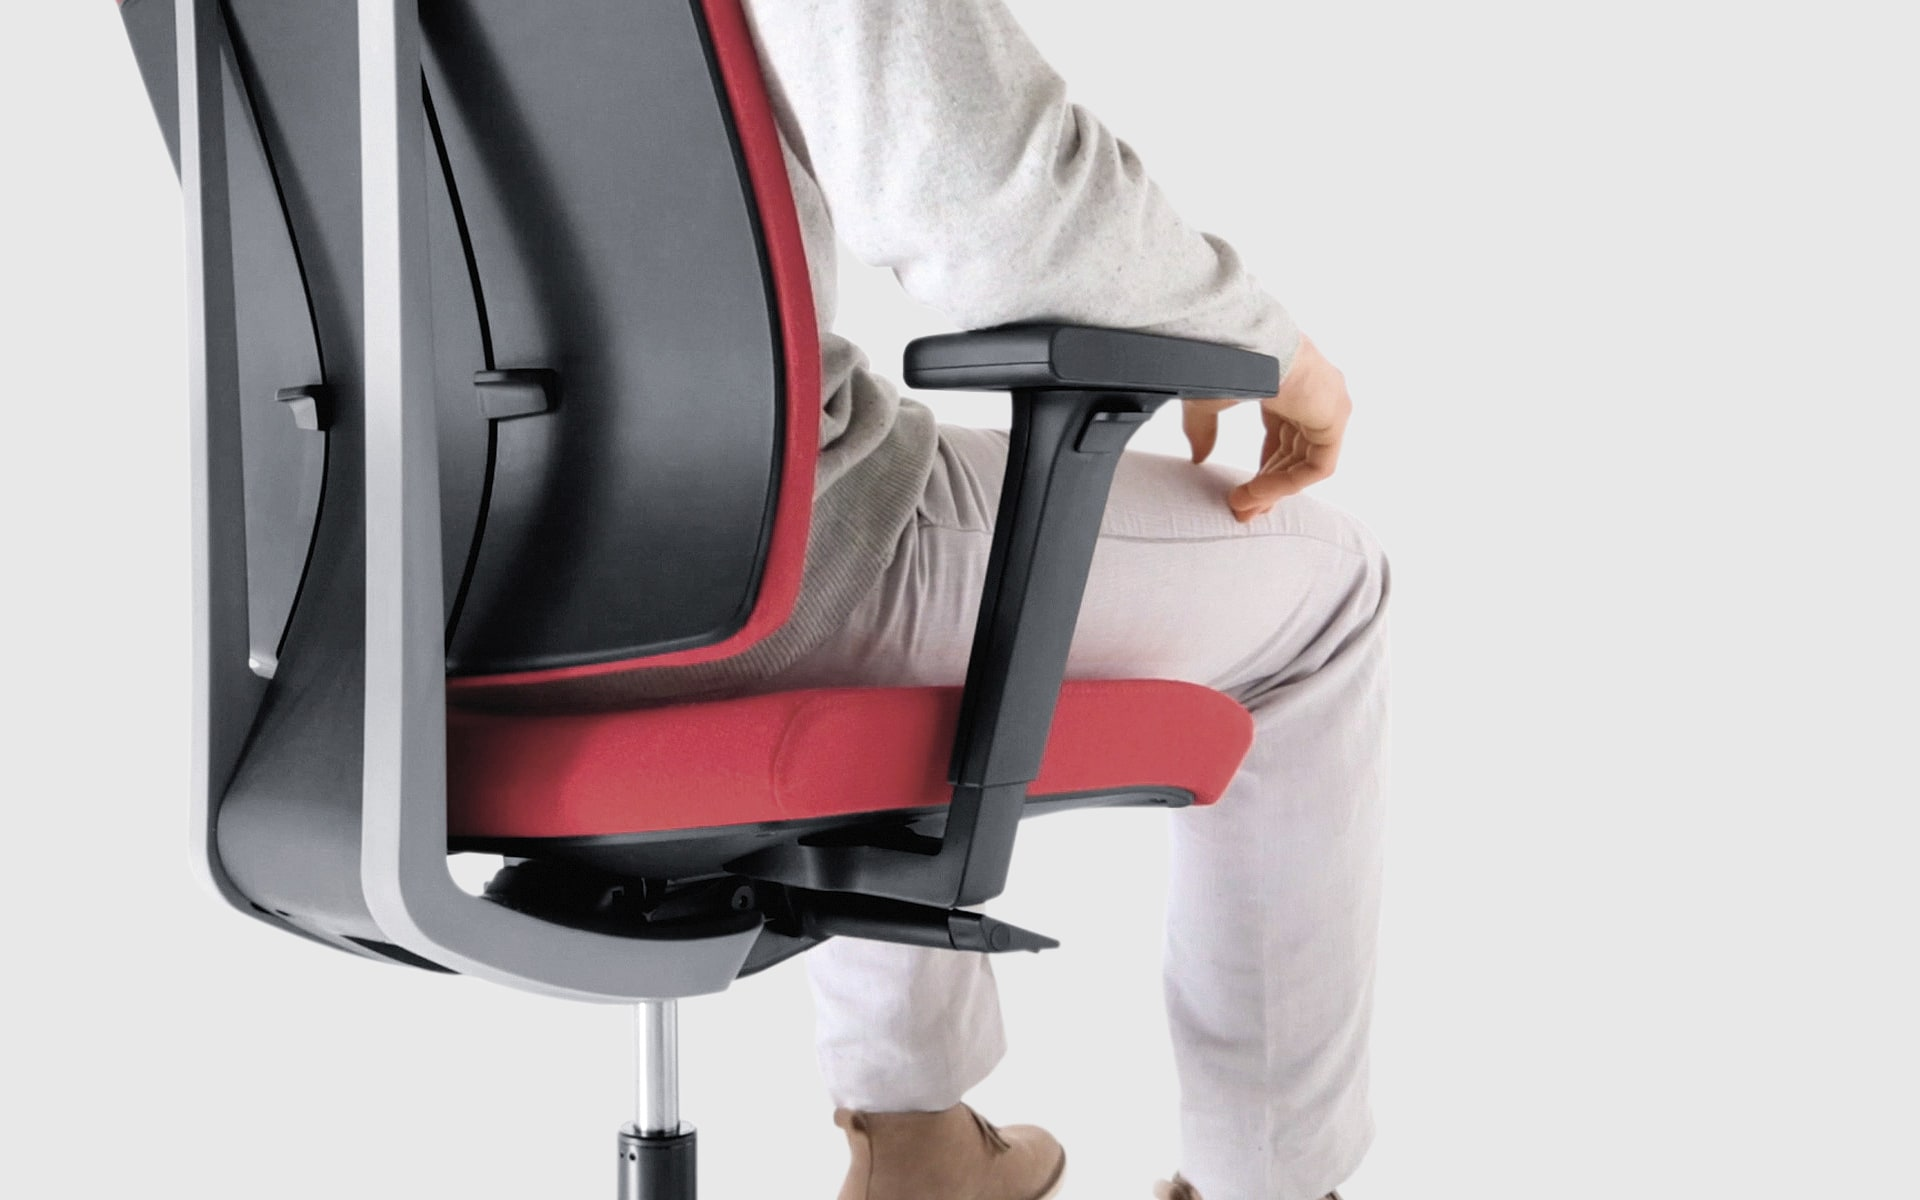 Person sits on Profim Xenon office chair by ITO Design with red upholstery